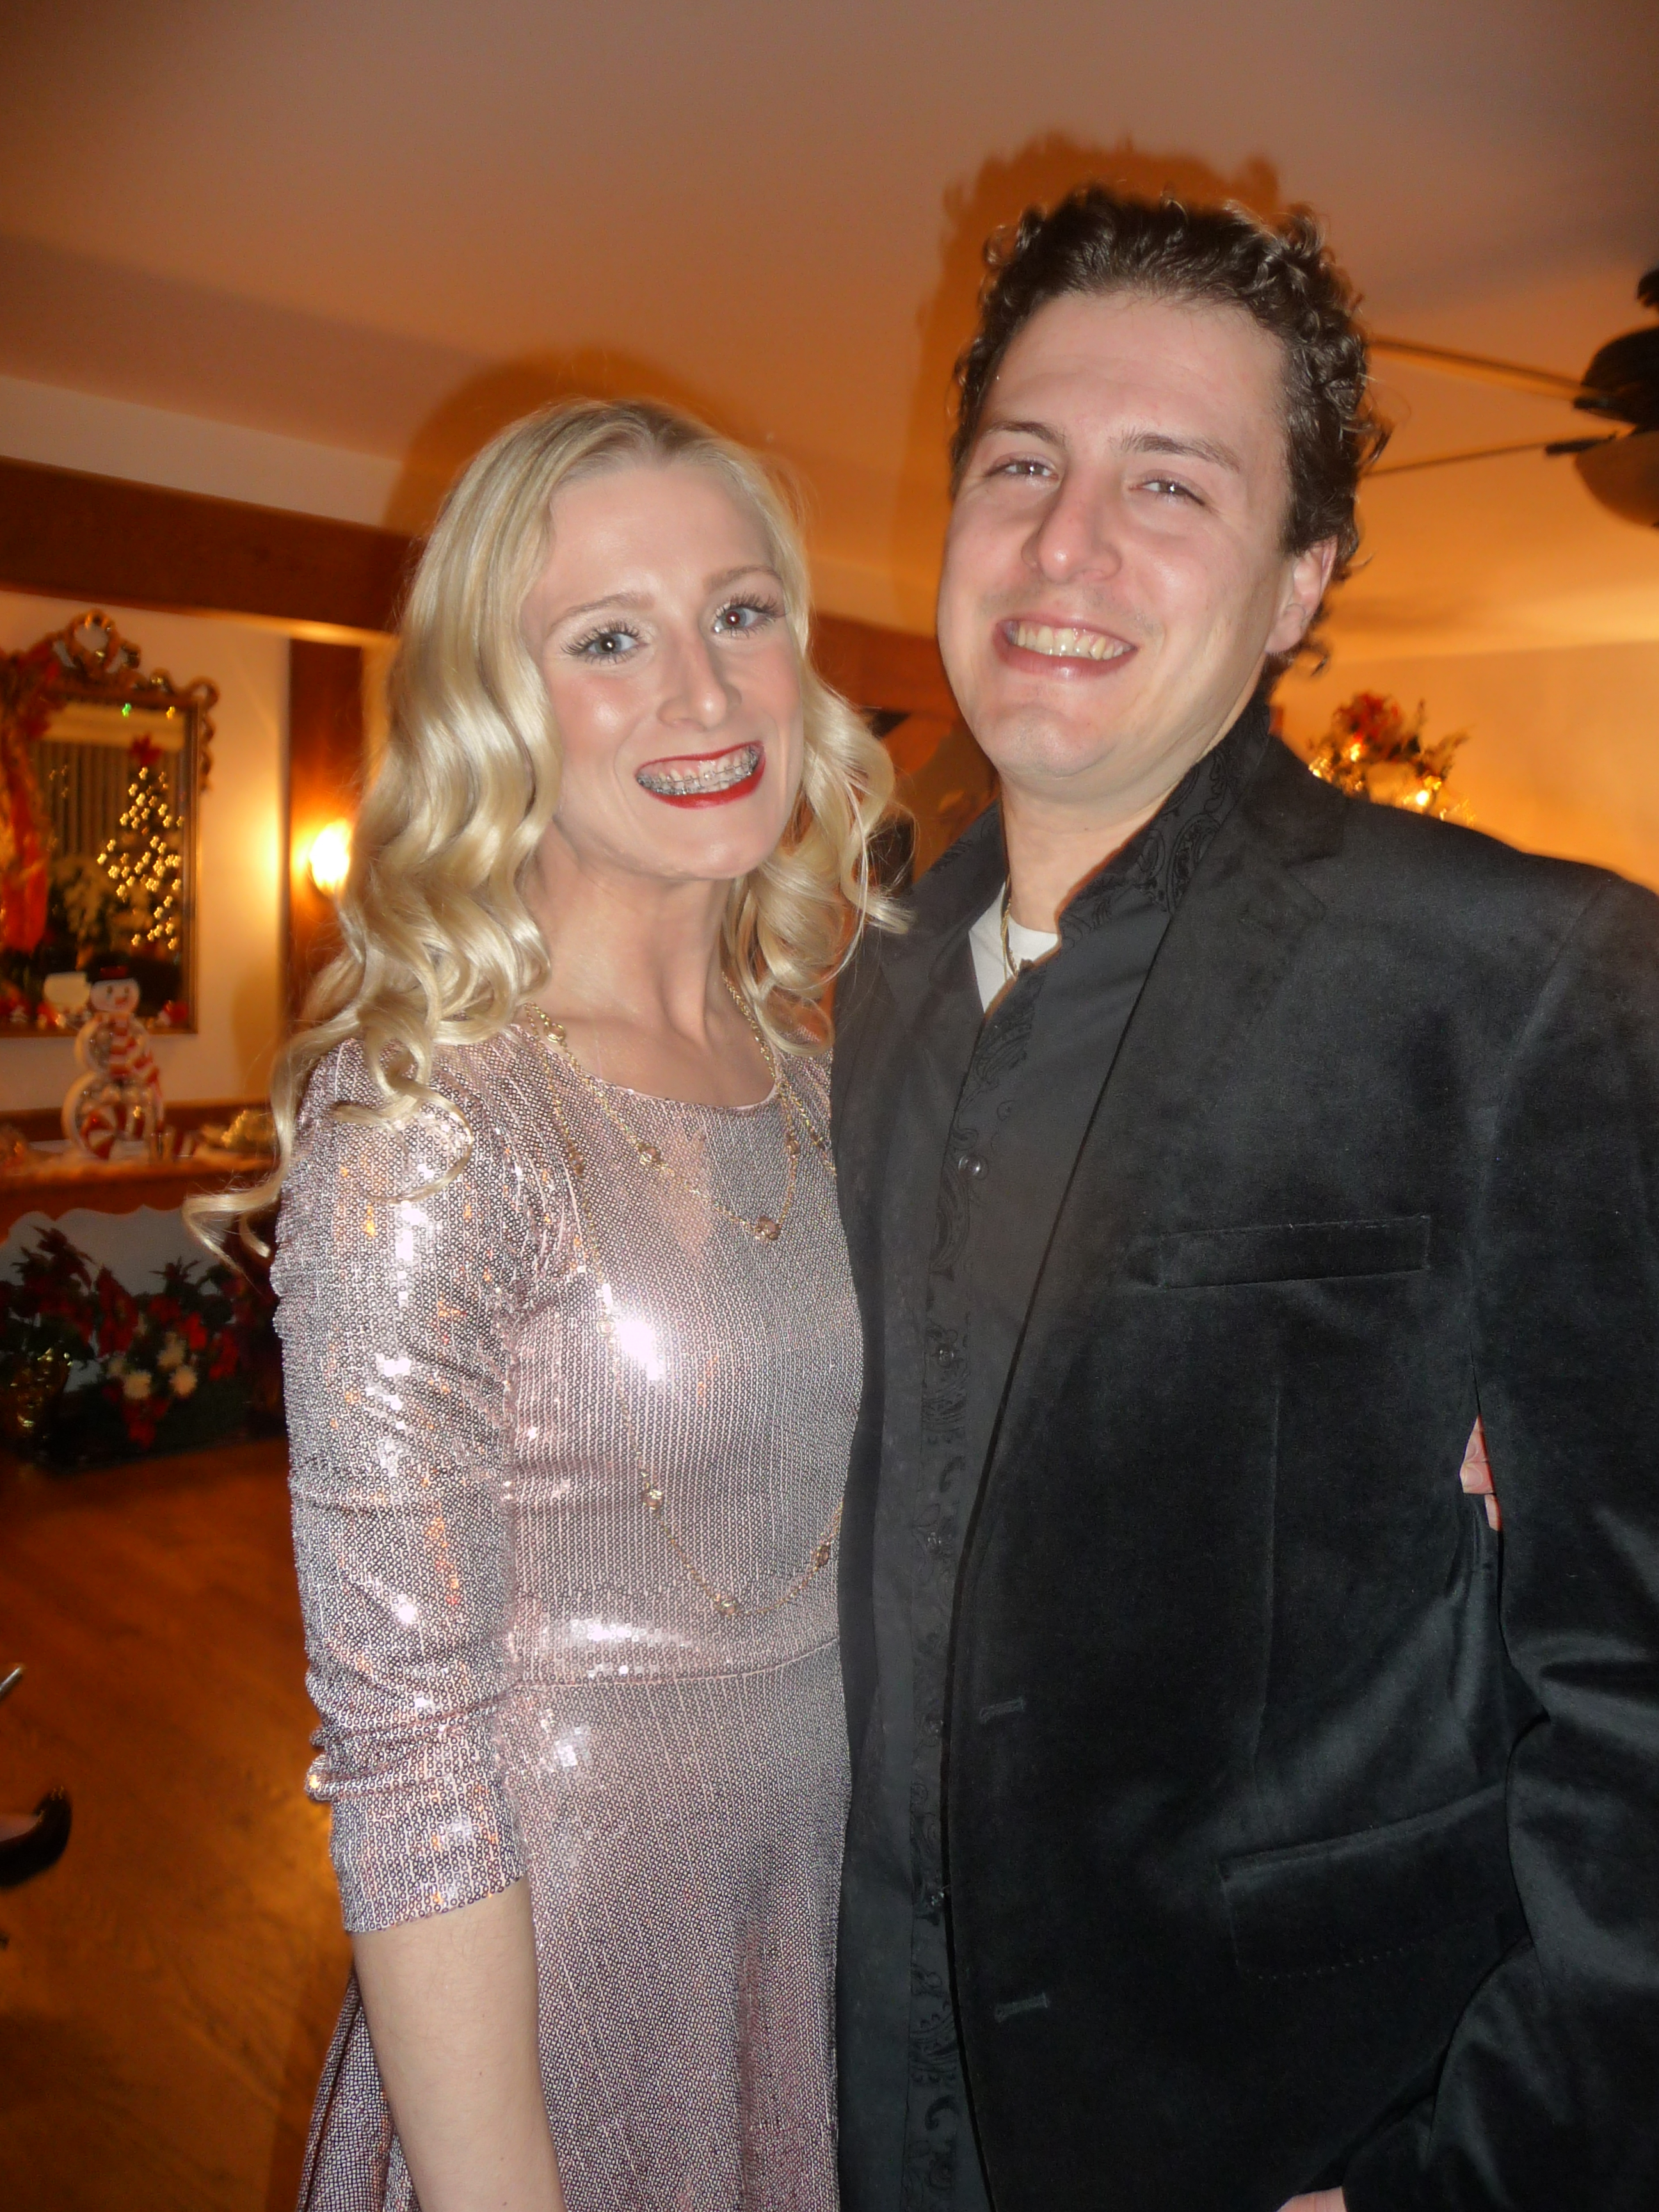 Brittany and Bryan